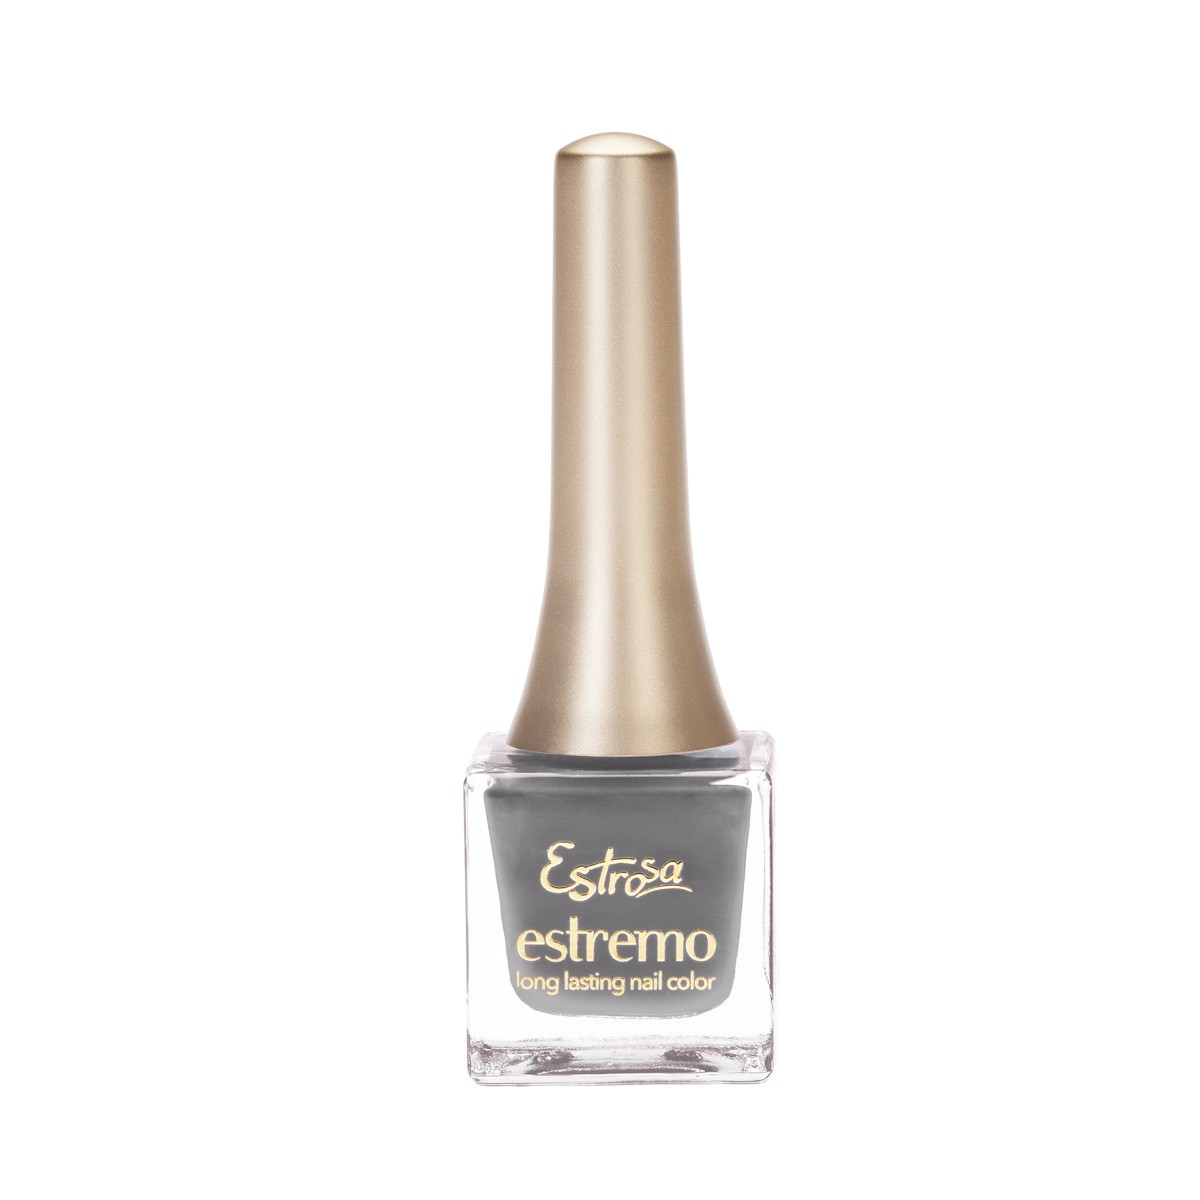 SMALTO LUNGA DURATA ESTREMO - MISTER GREY 12ML